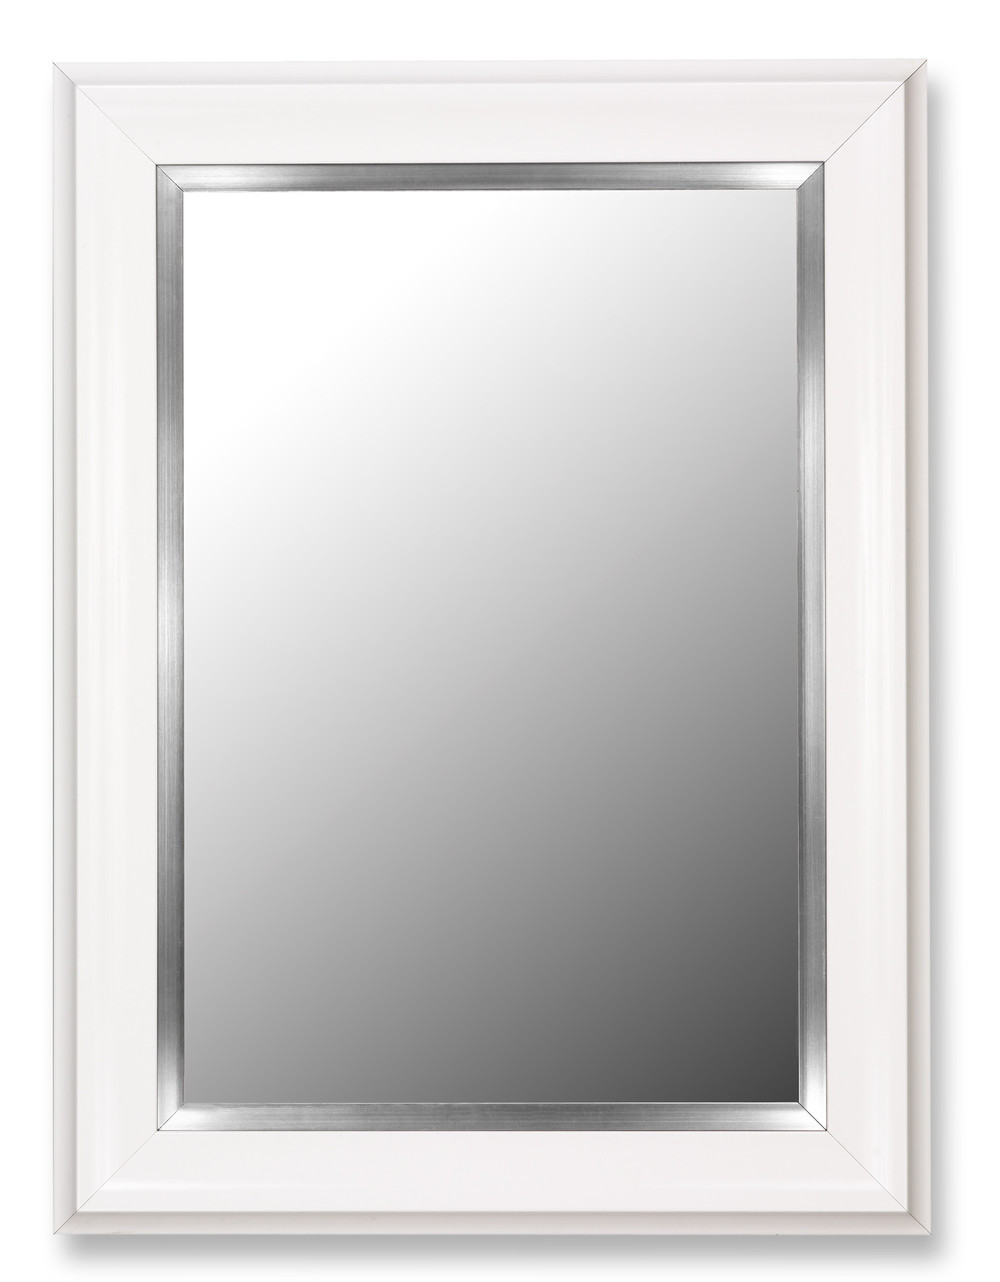 White Framed Mirror 39 H x 78 W - $730 Need 1